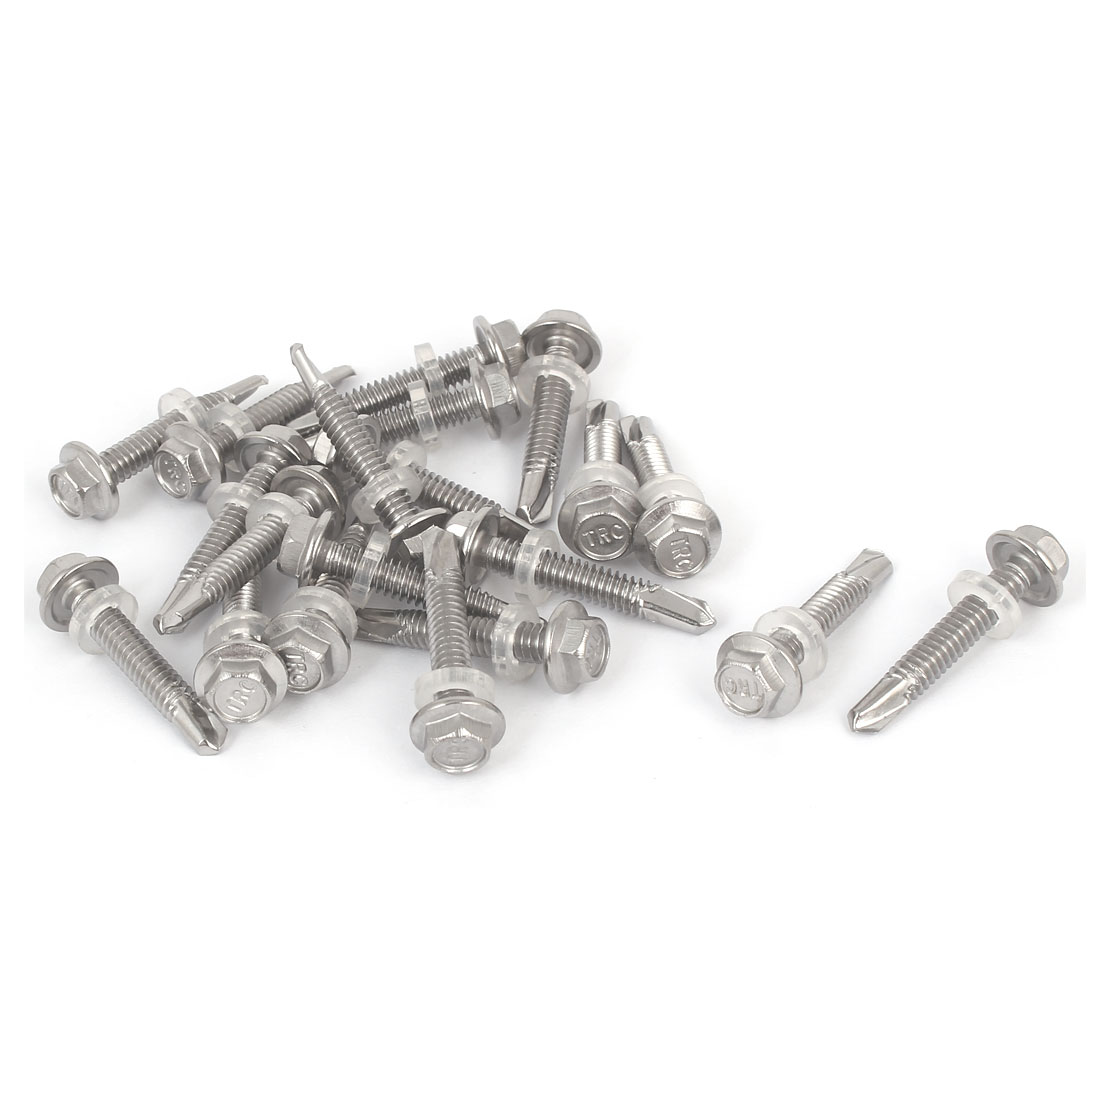 410 Stainless Steel Phillips Flat Head Sheet Metal Screws Self-Tapping Screws Wood Srews 100, M3.5X32mm